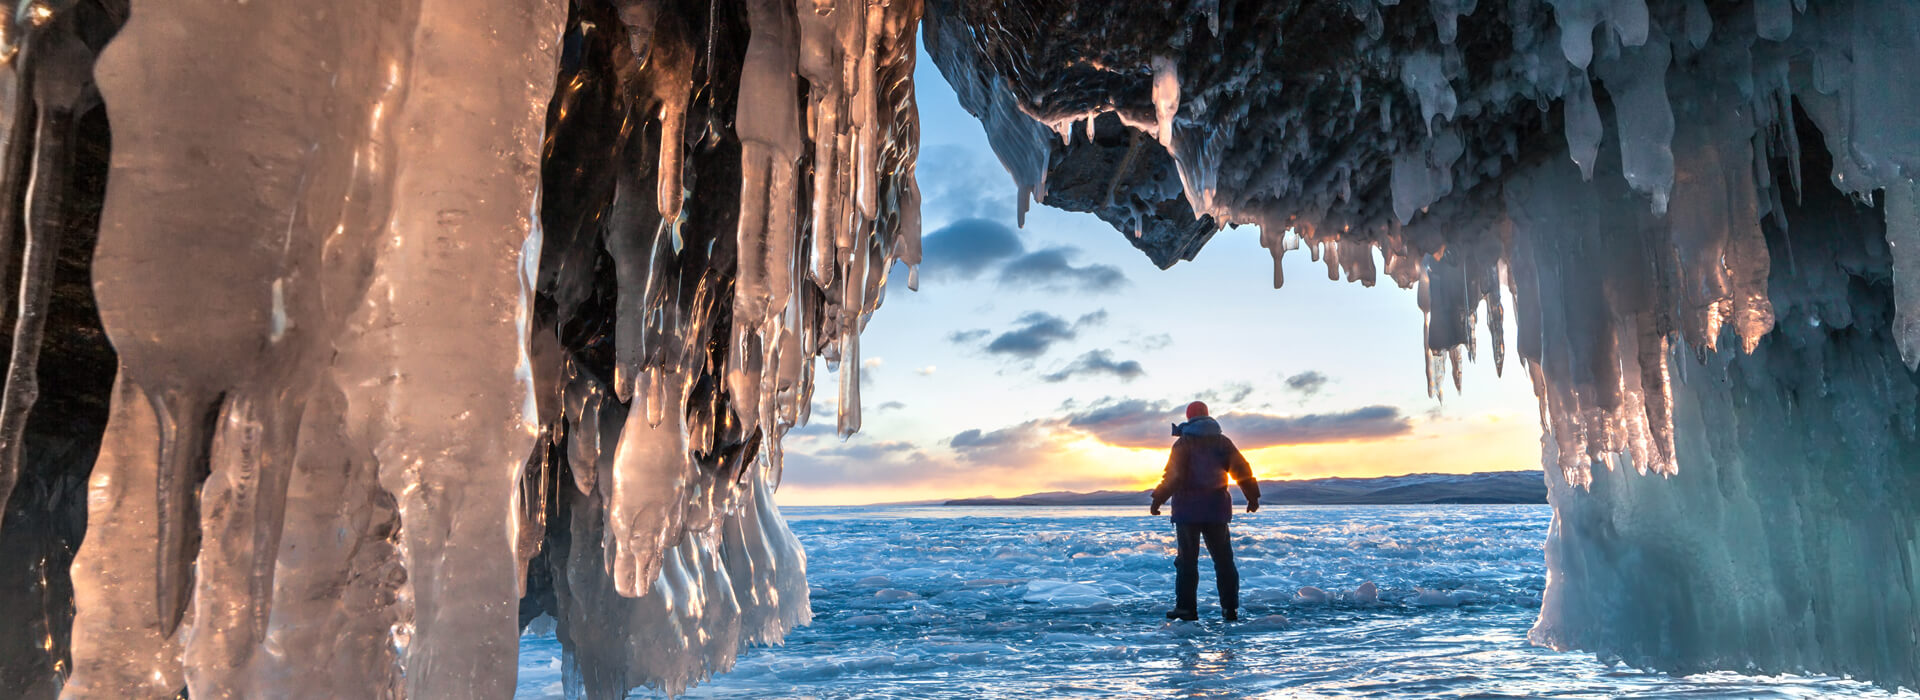 Ice cave in Iceland in sunrise